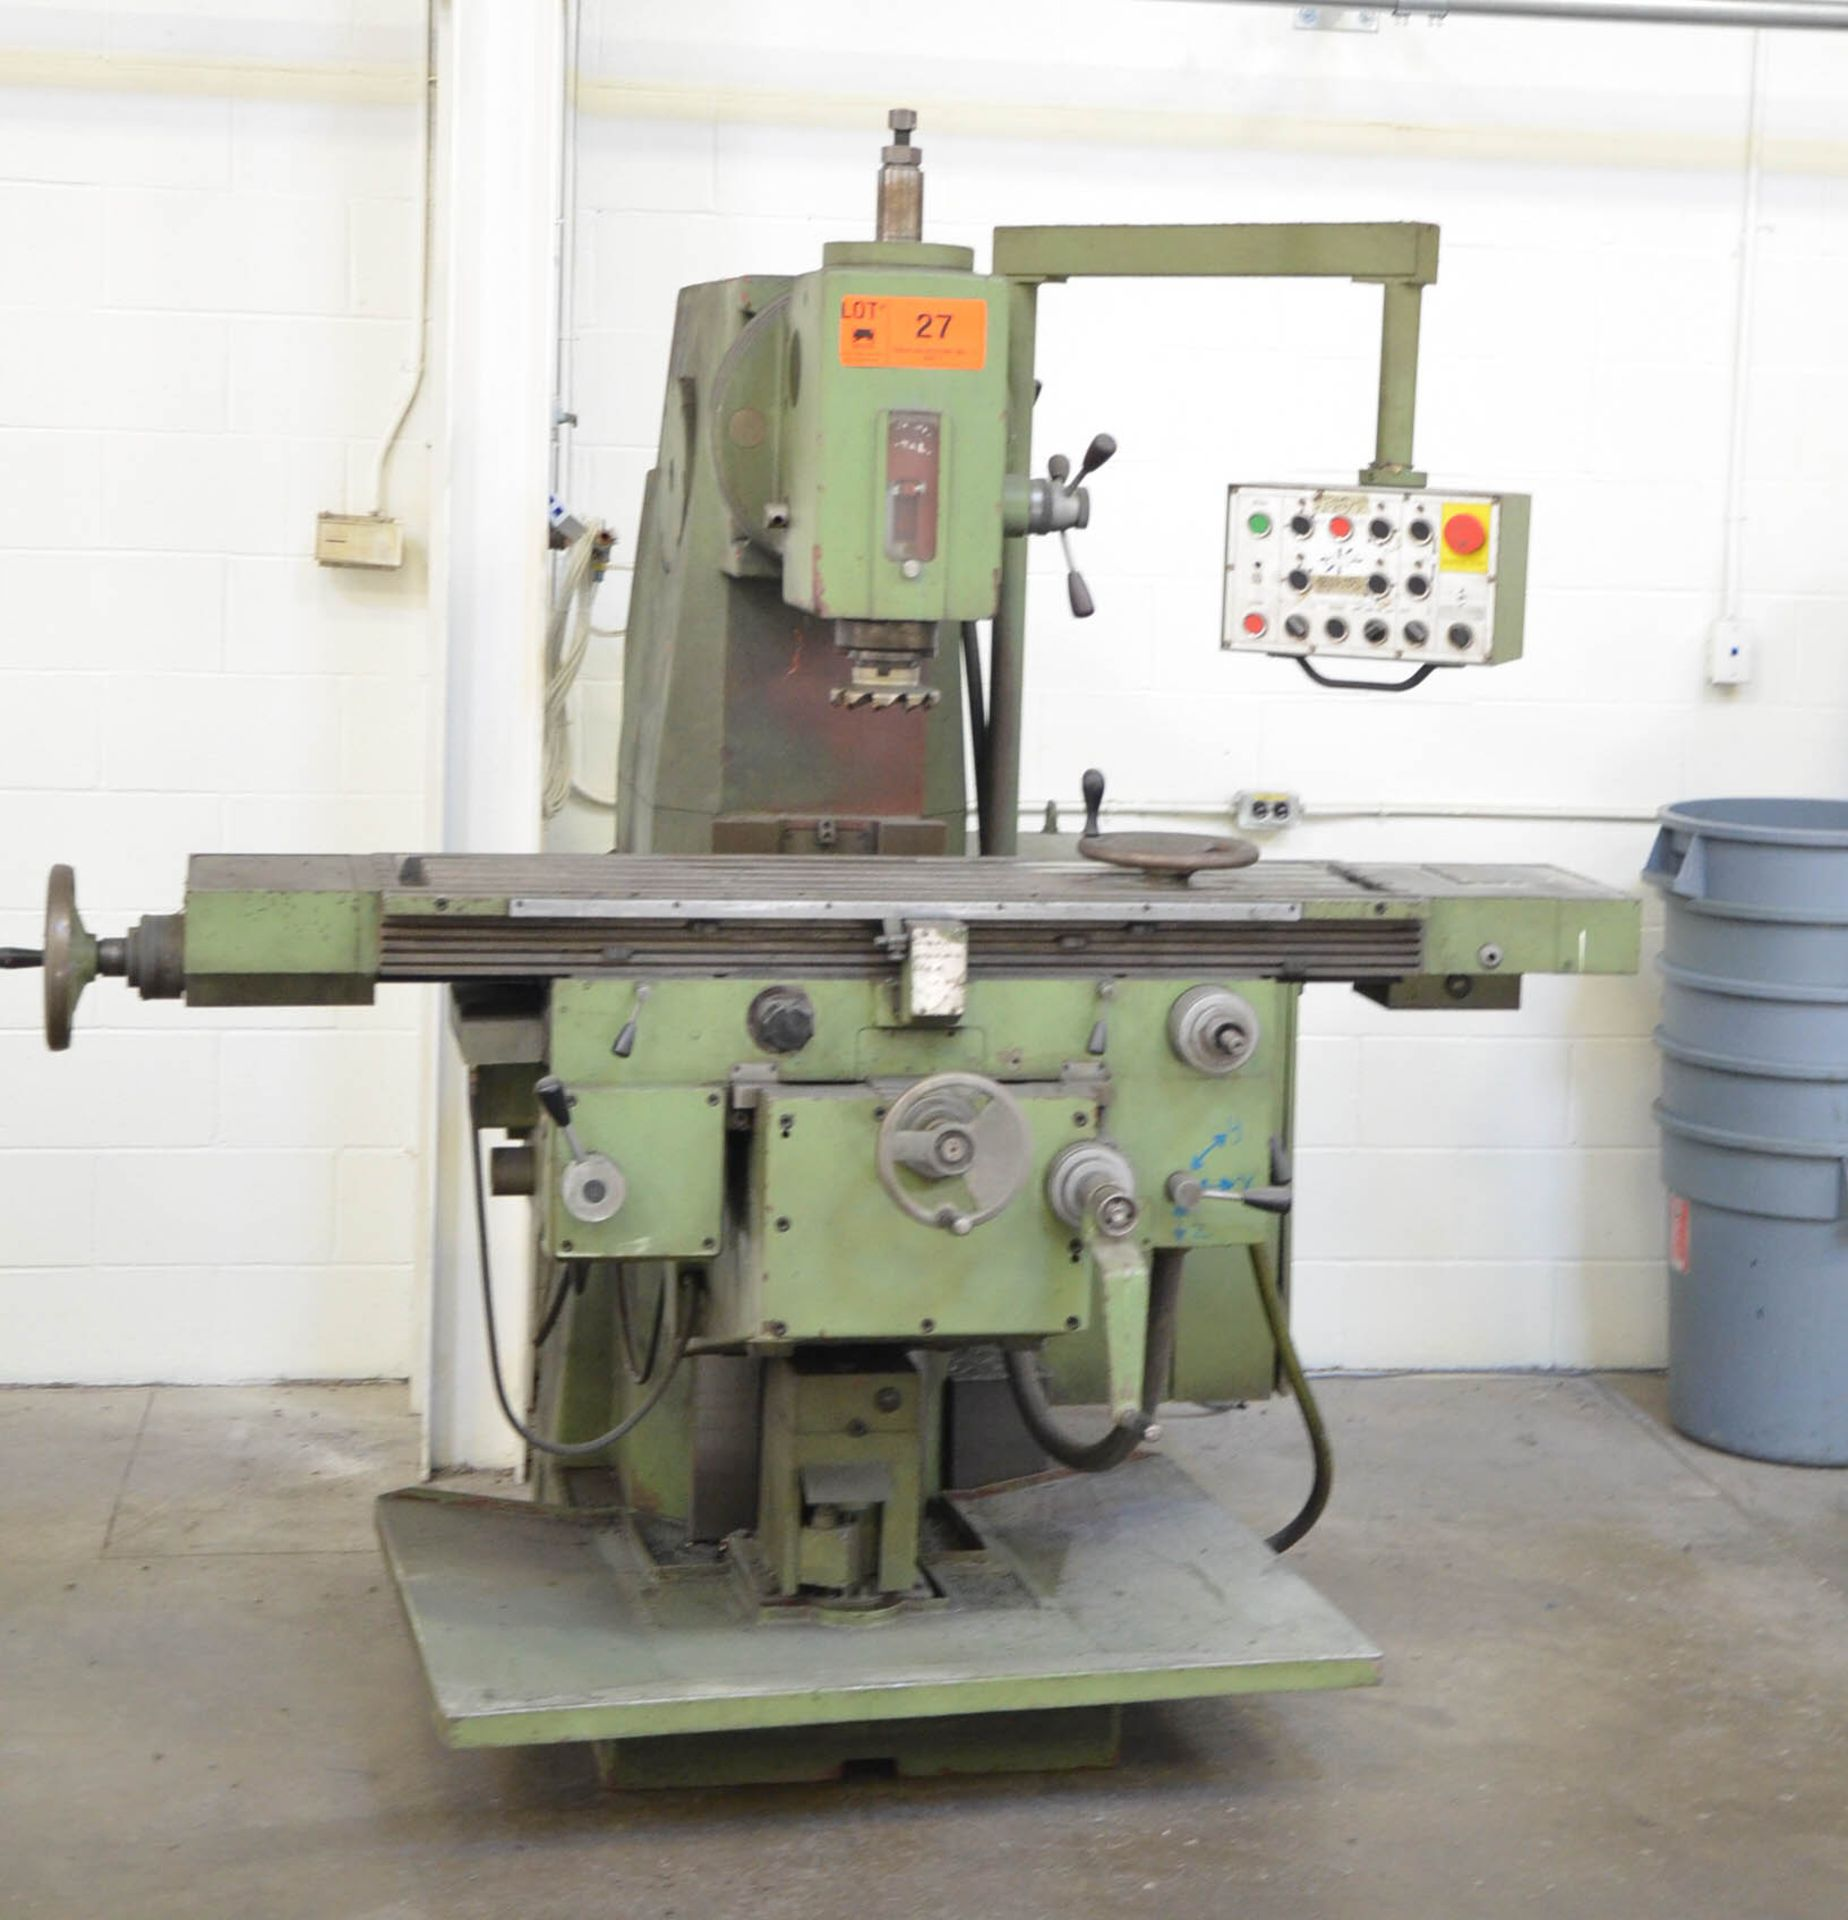 """TOS UNIVERSAL MILLING MACHINE WITH 12""""X50"""" TABLE, SPEEDS TO 1,750 RPM, #50 SPINDLE TAPER, PUSH - Image 2 of 4"""